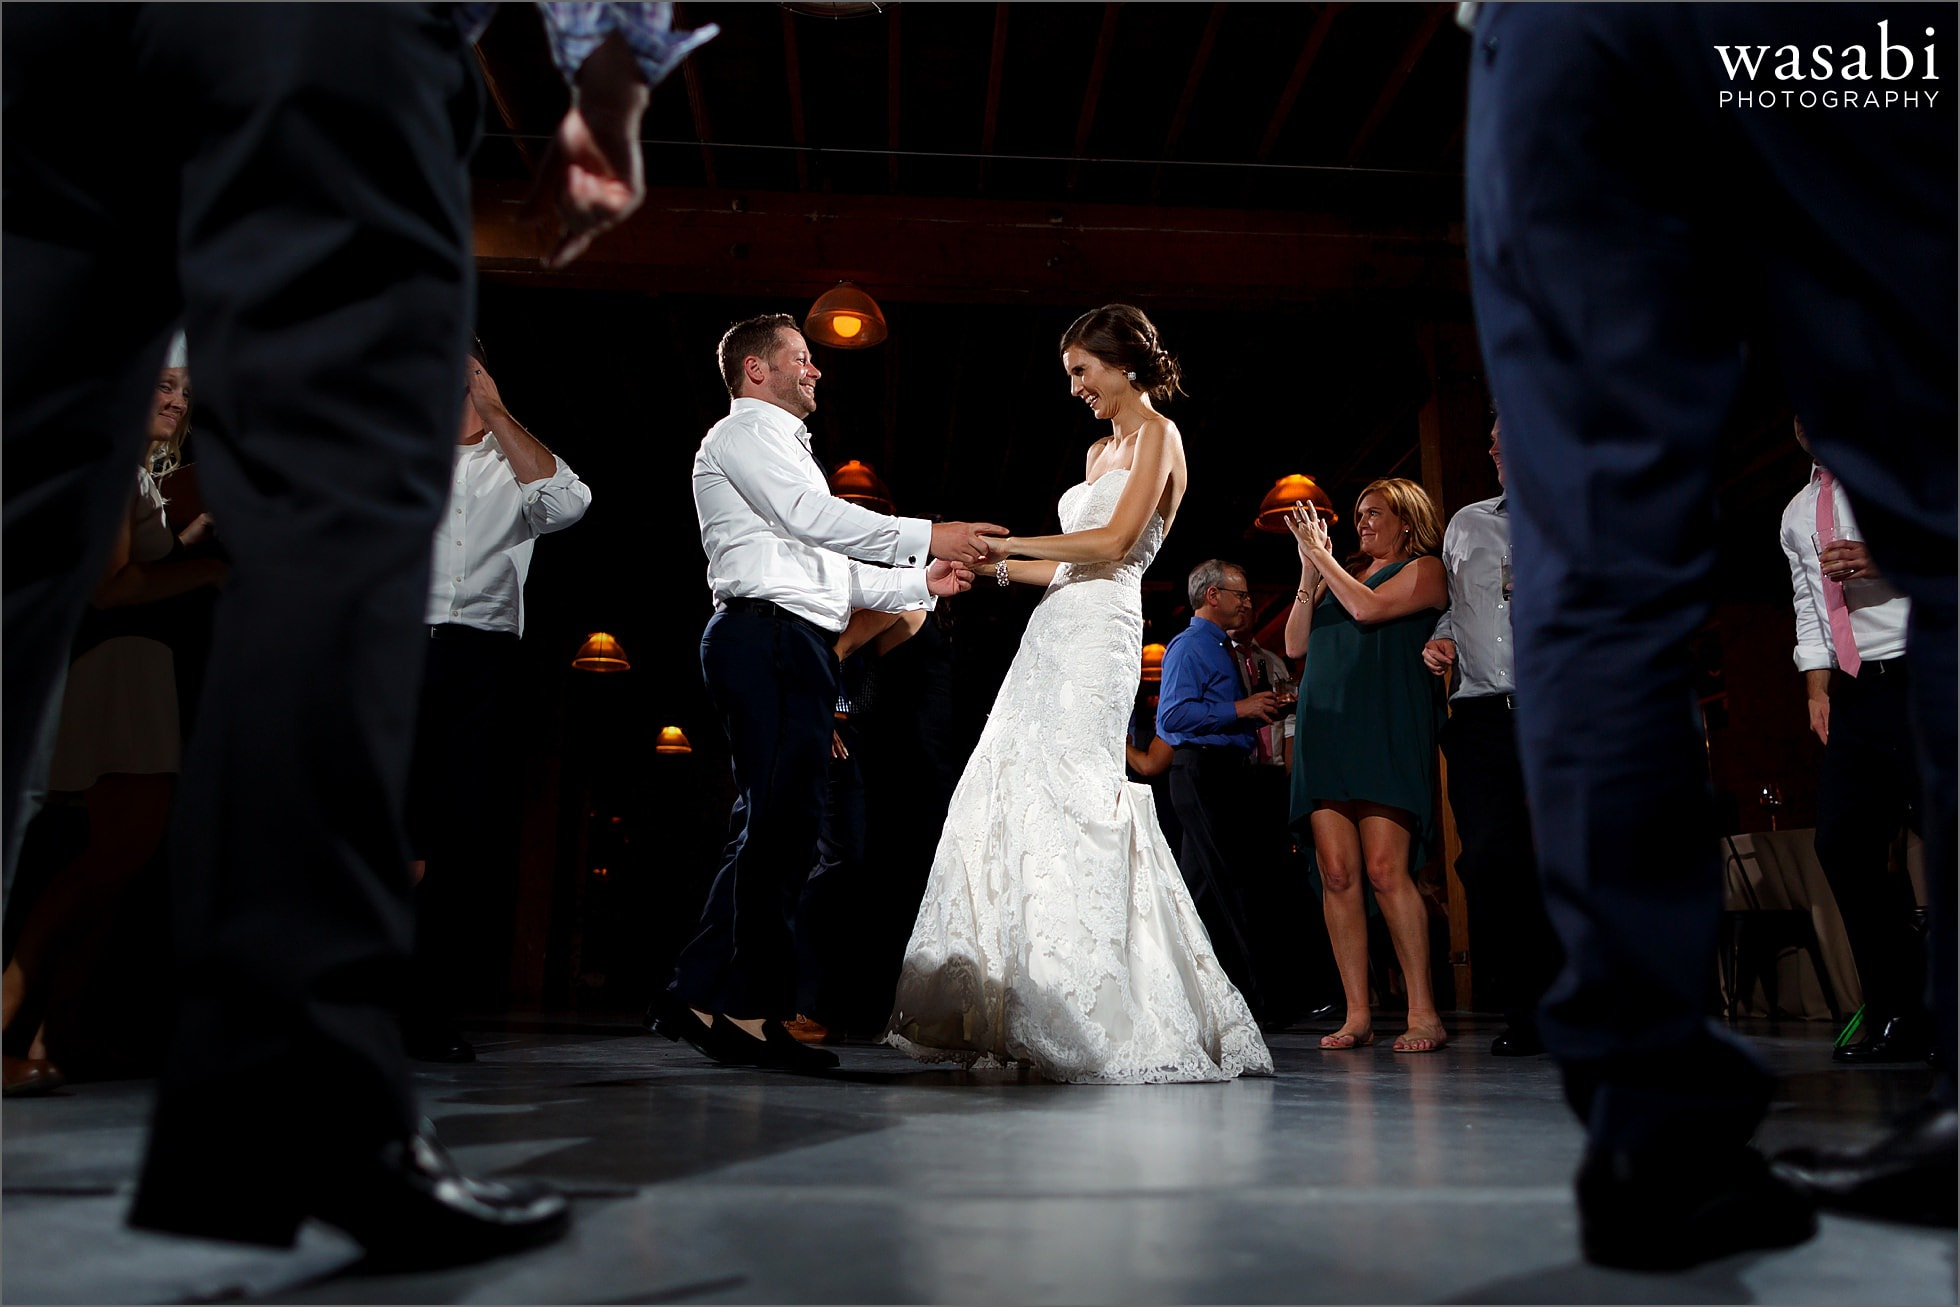 dancing during reception at architectural artifacts wedding chicago